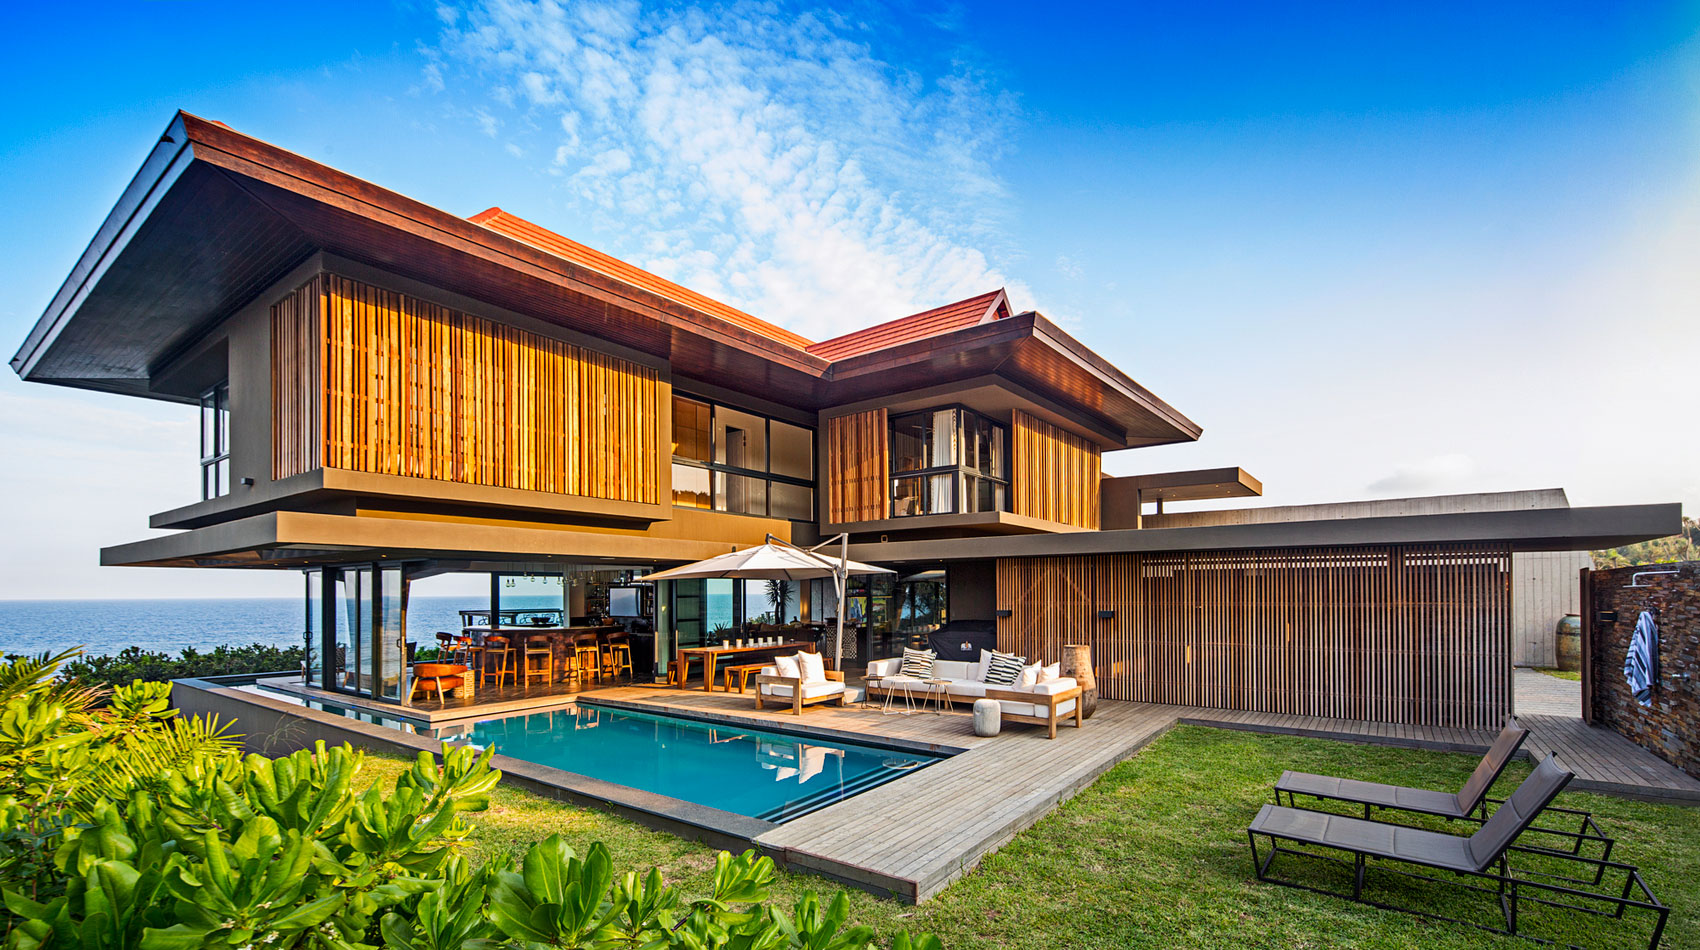 Metropole Architects Design a Contemporary Home on the Dolphin Coast ...